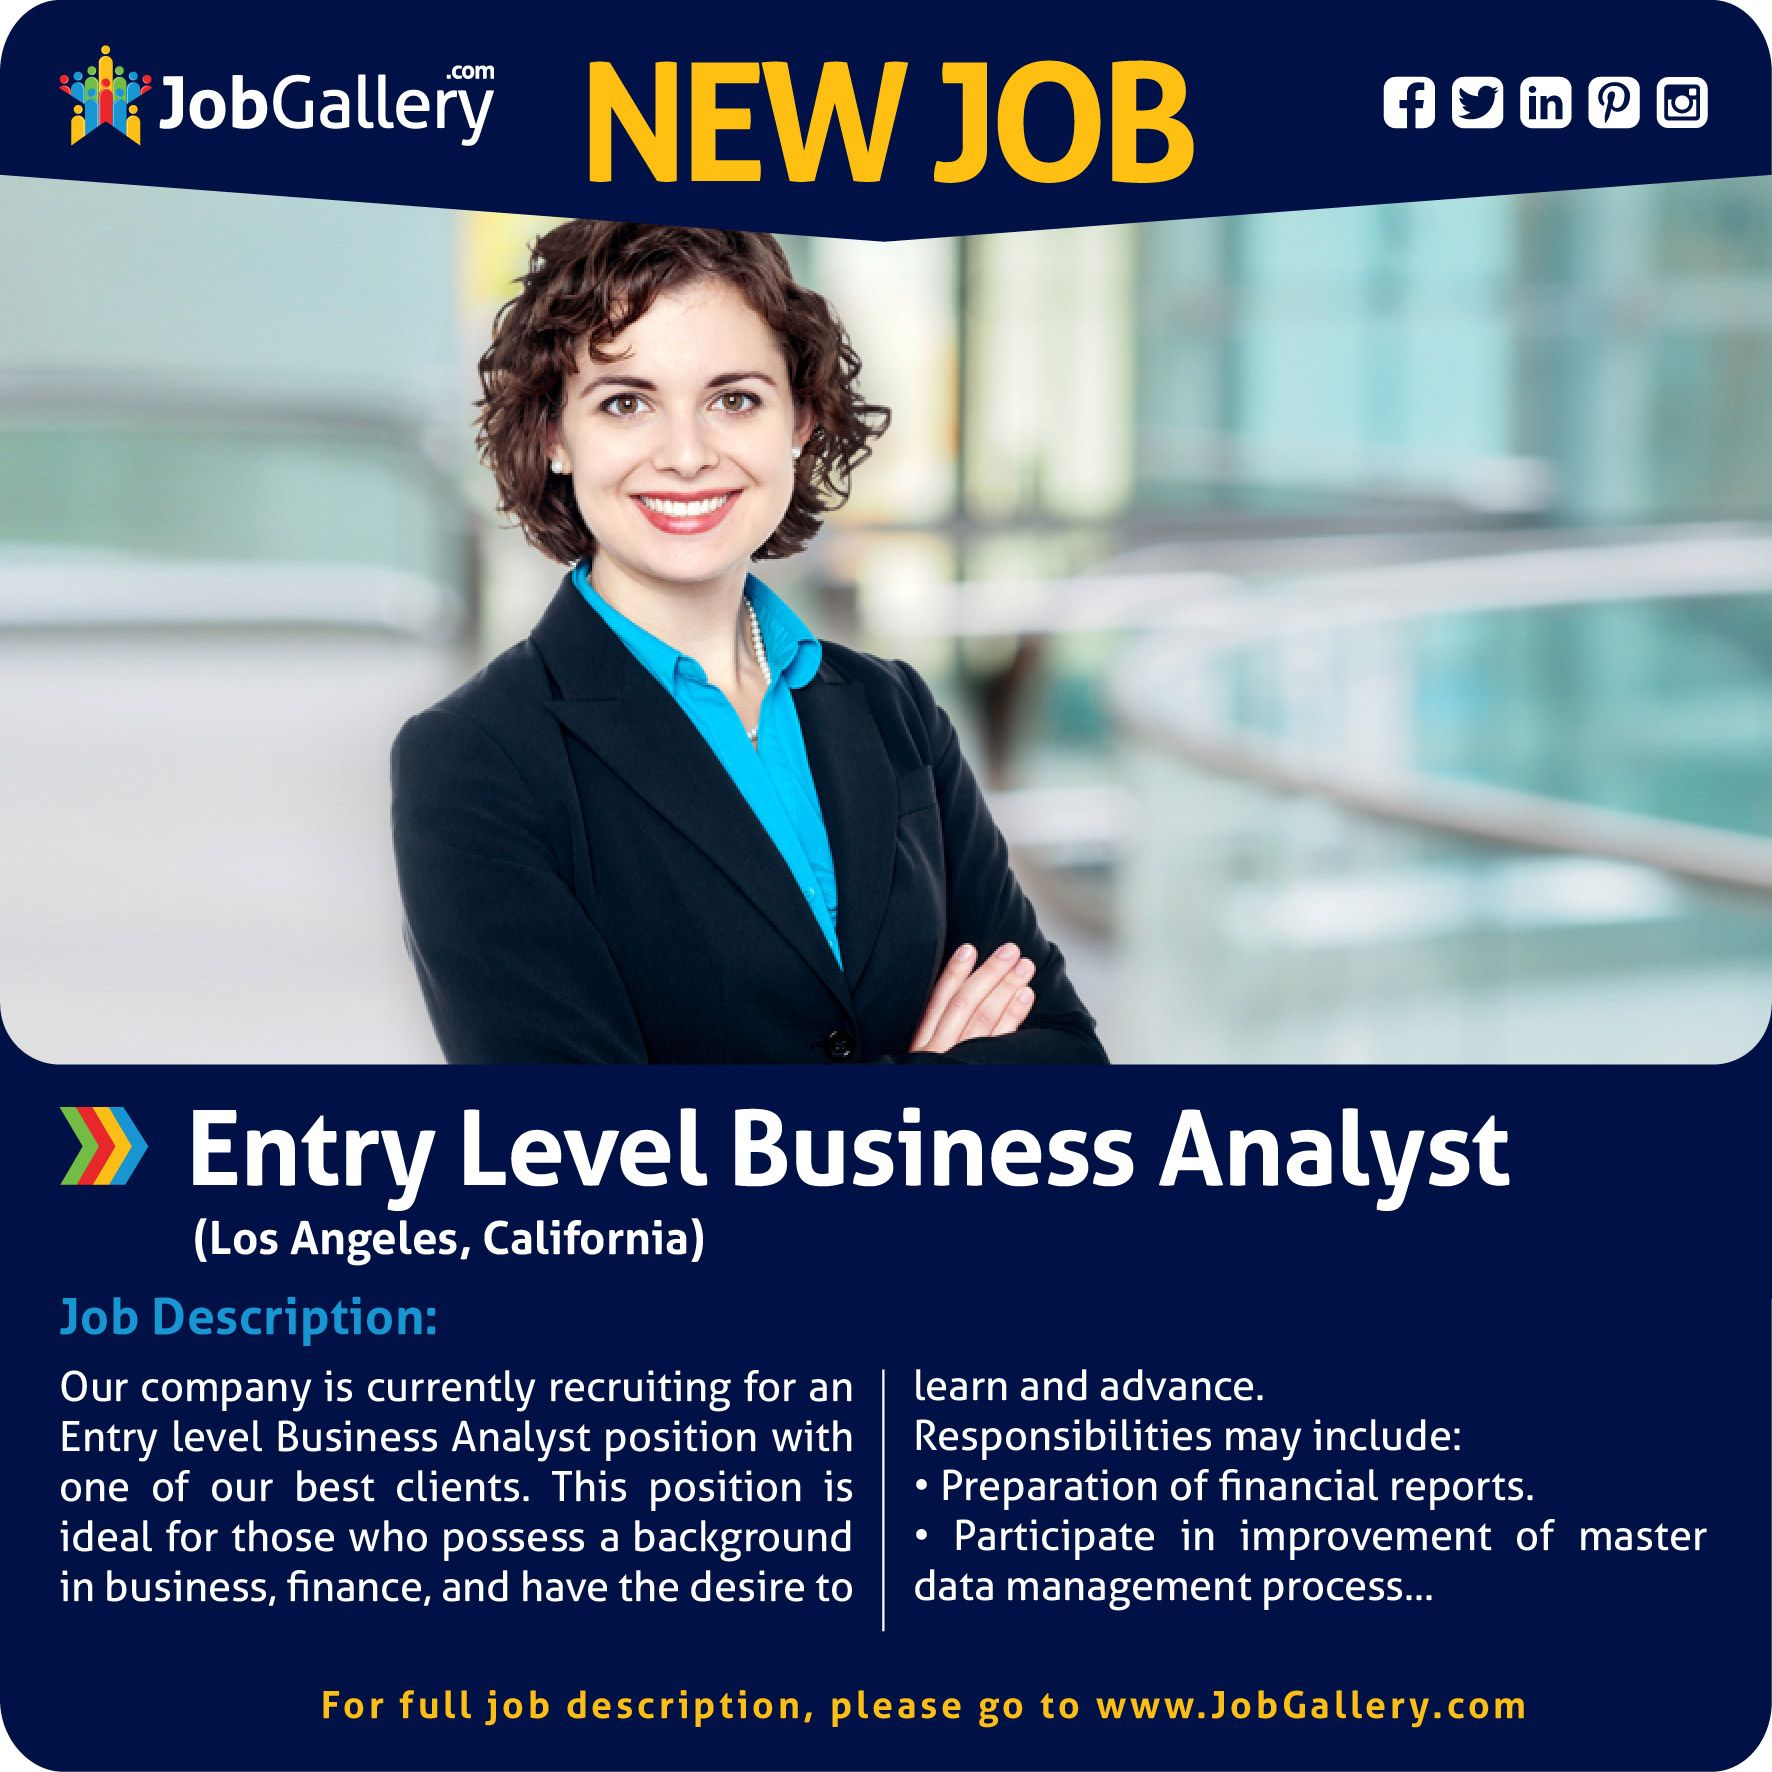 Entry Level Business Analyst Business Analyst Entry Level Job Opening